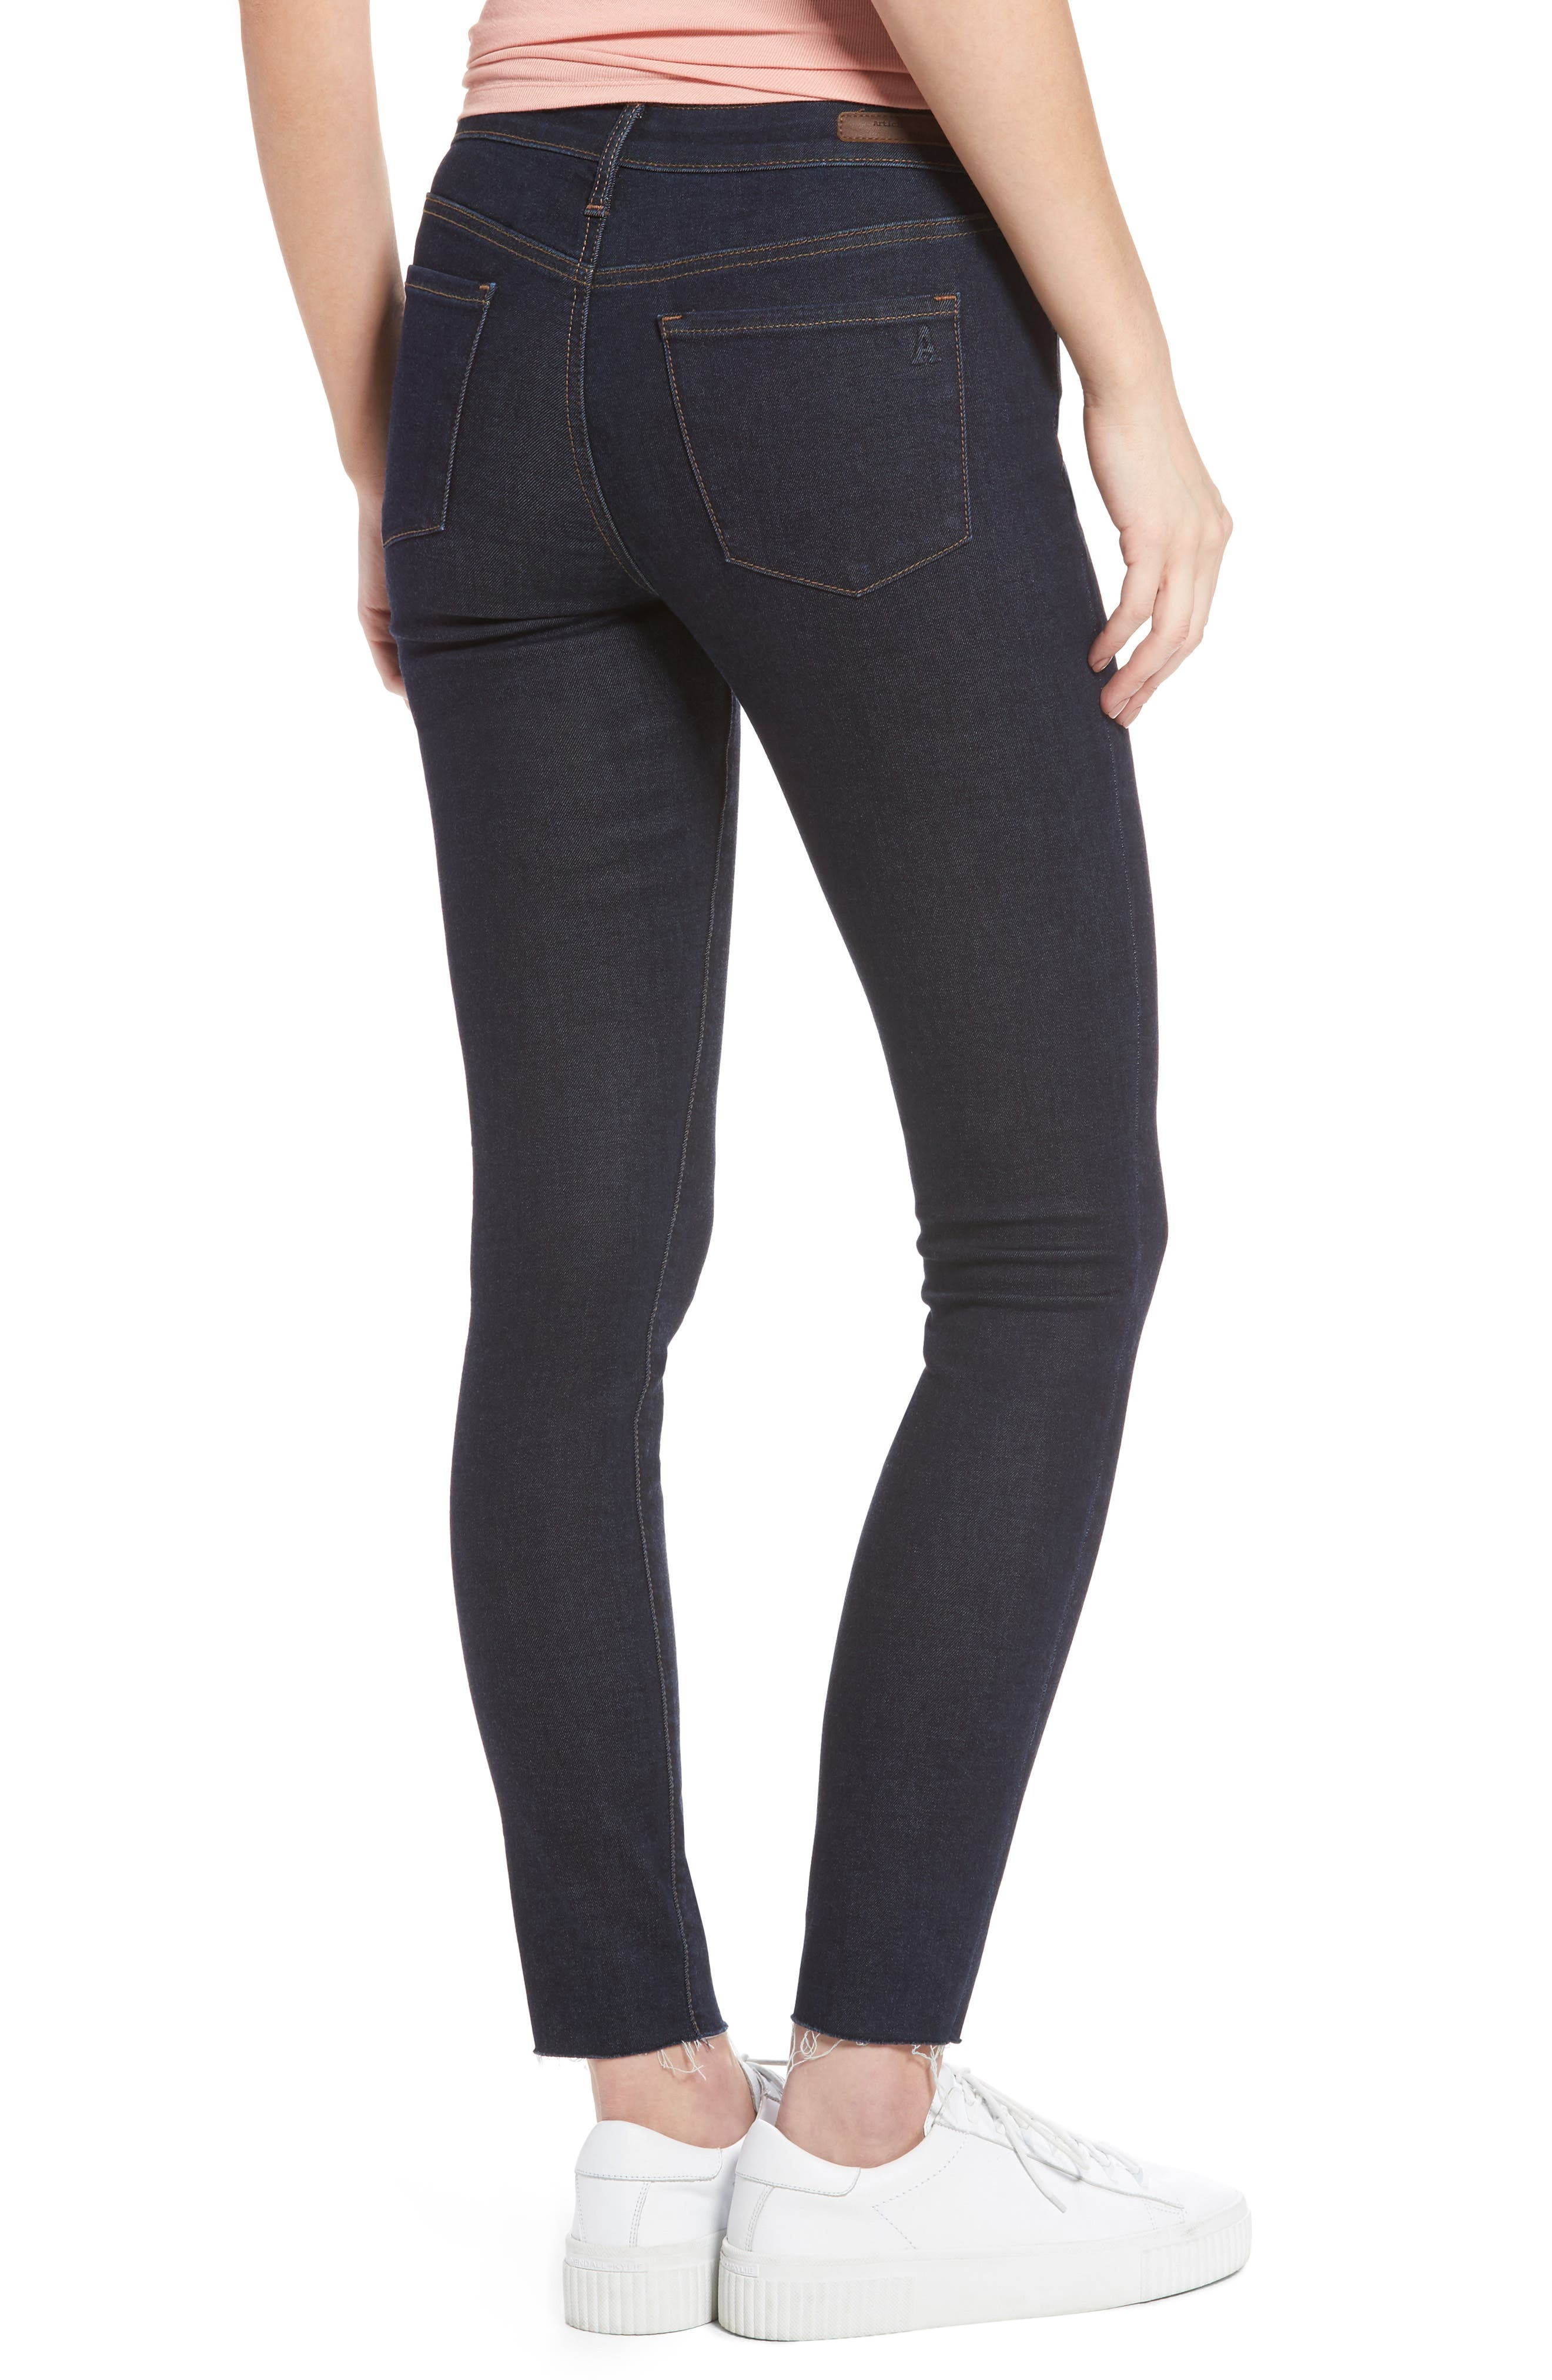 Sarah Ankle Skinny Jeans,                             Alternate thumbnail 2, color,                             495